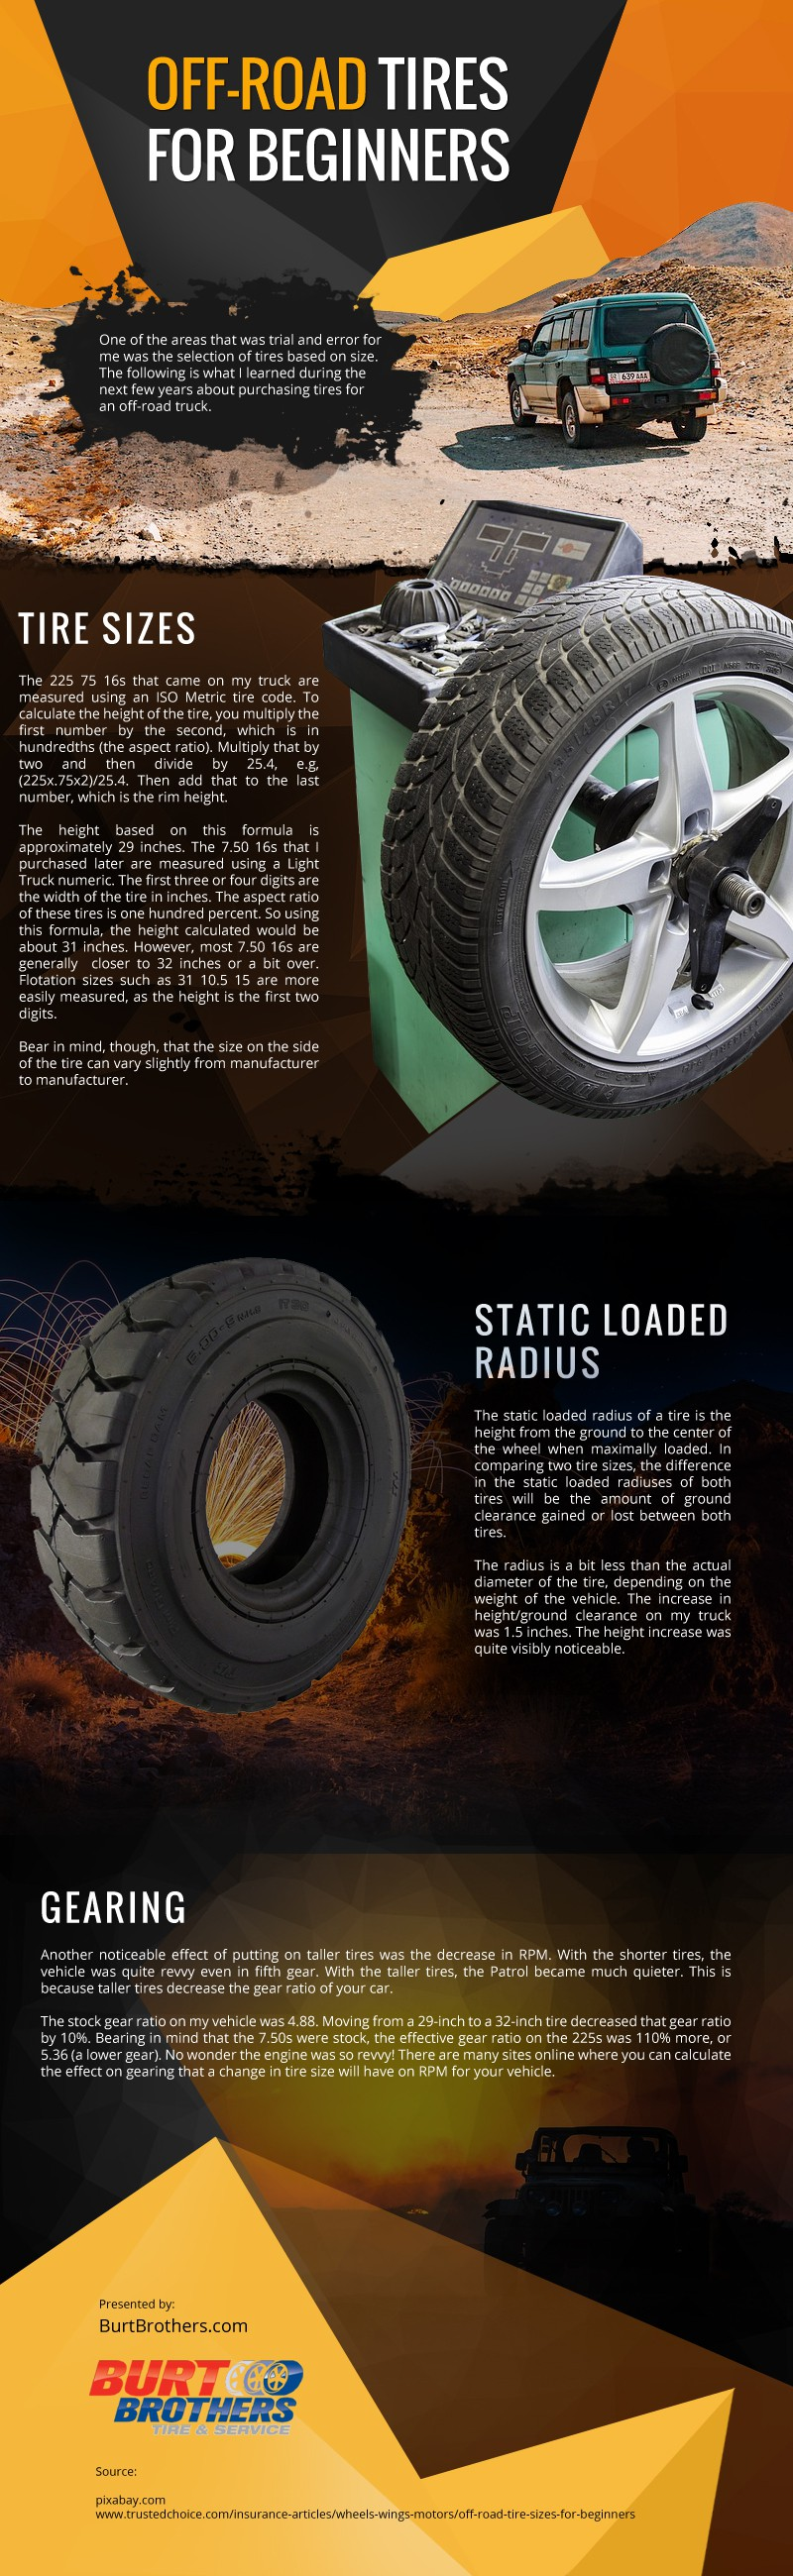 Off-Road Tires for Beginners [infographic]